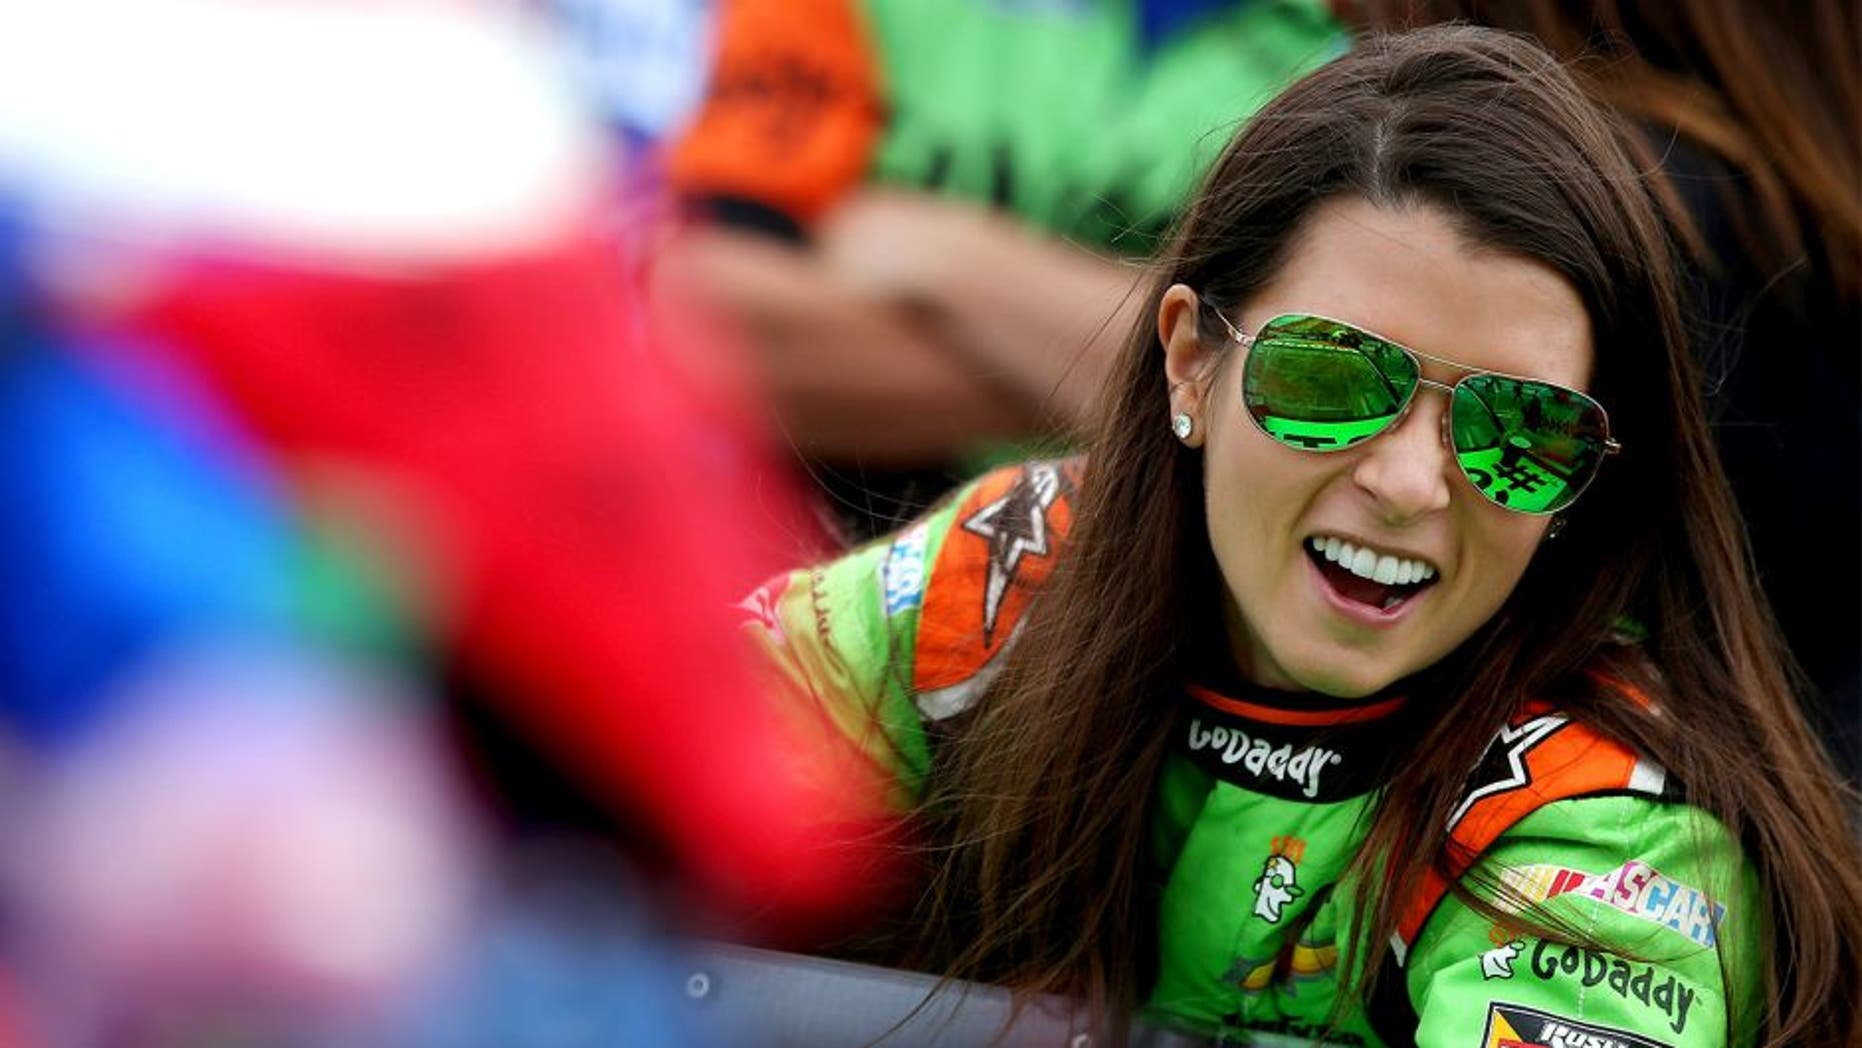 WATKINS GLEN, NY - AUGUST 08: Danica Patrick, driver of the #10 GoDaddy Chevrolet, stands on the grid during qualifying for the NASCAR Sprint Cup Series Cheez-It 355 at Watkins Glen International on August 8, 2015 in Watkins Glen, New York. (Photo by Sean Gardner/NASCAR via Getty Images)